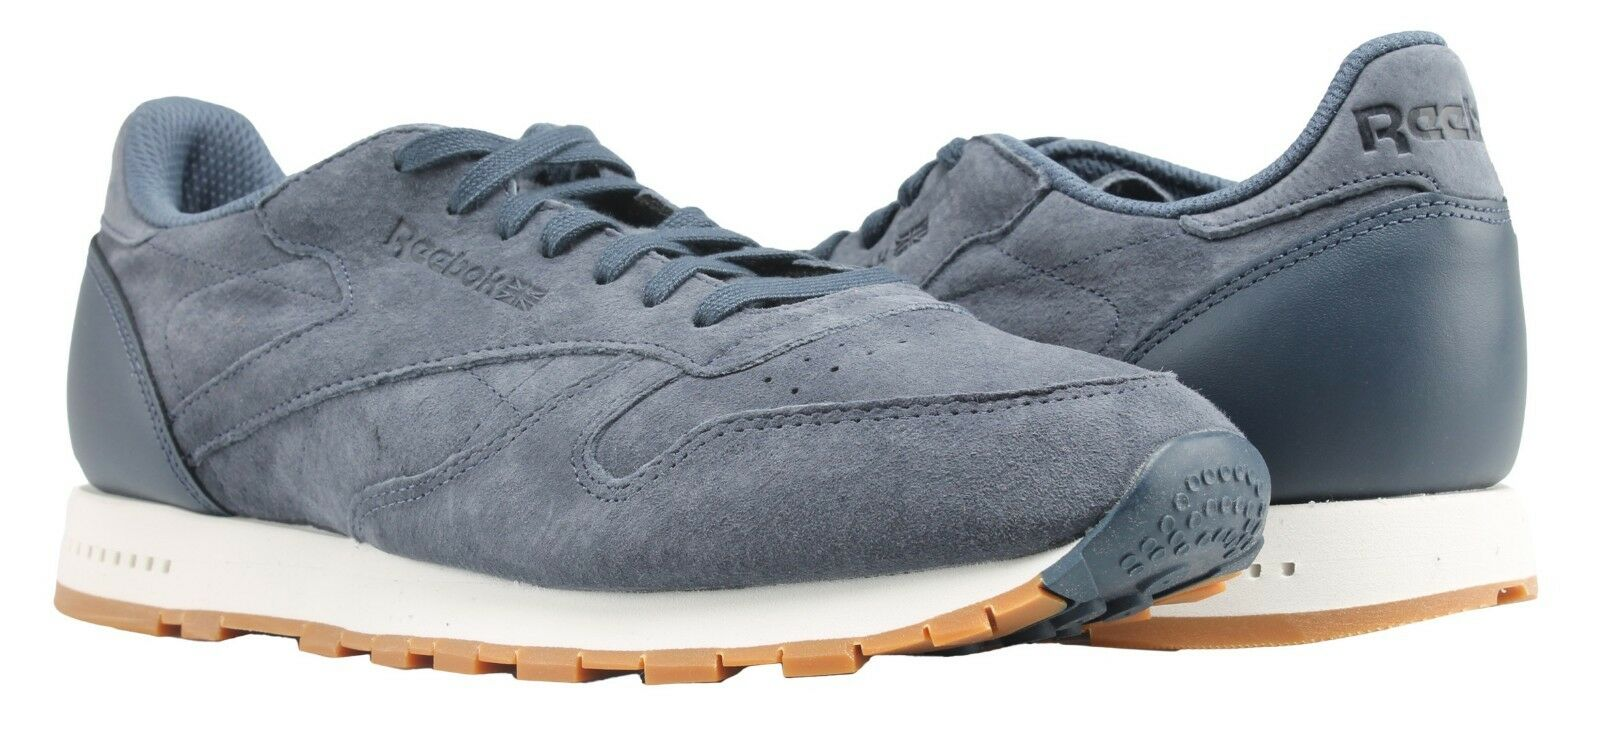 Uk size 11 - reebok classic sg trainers - bs7485